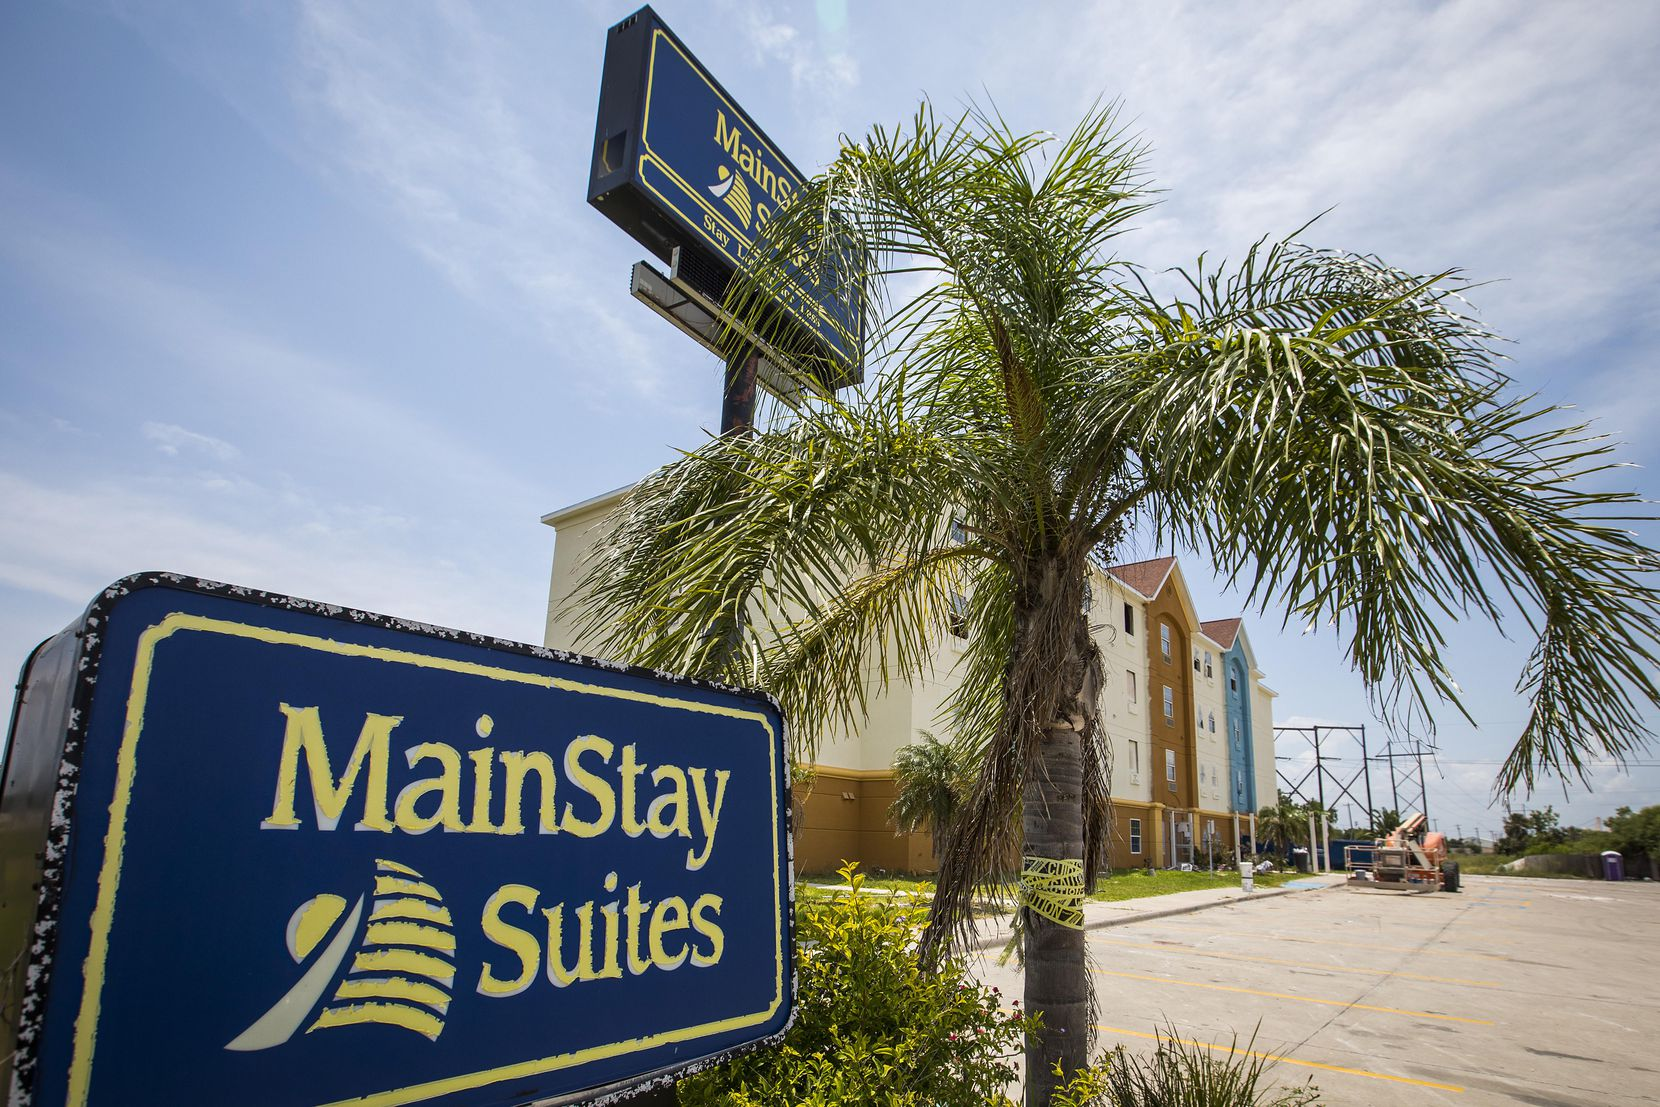 The MainStay Suites in Ingleside sustained damage from Hurricane Harvey last August. Crews were still working on the hotel earlier this summer.